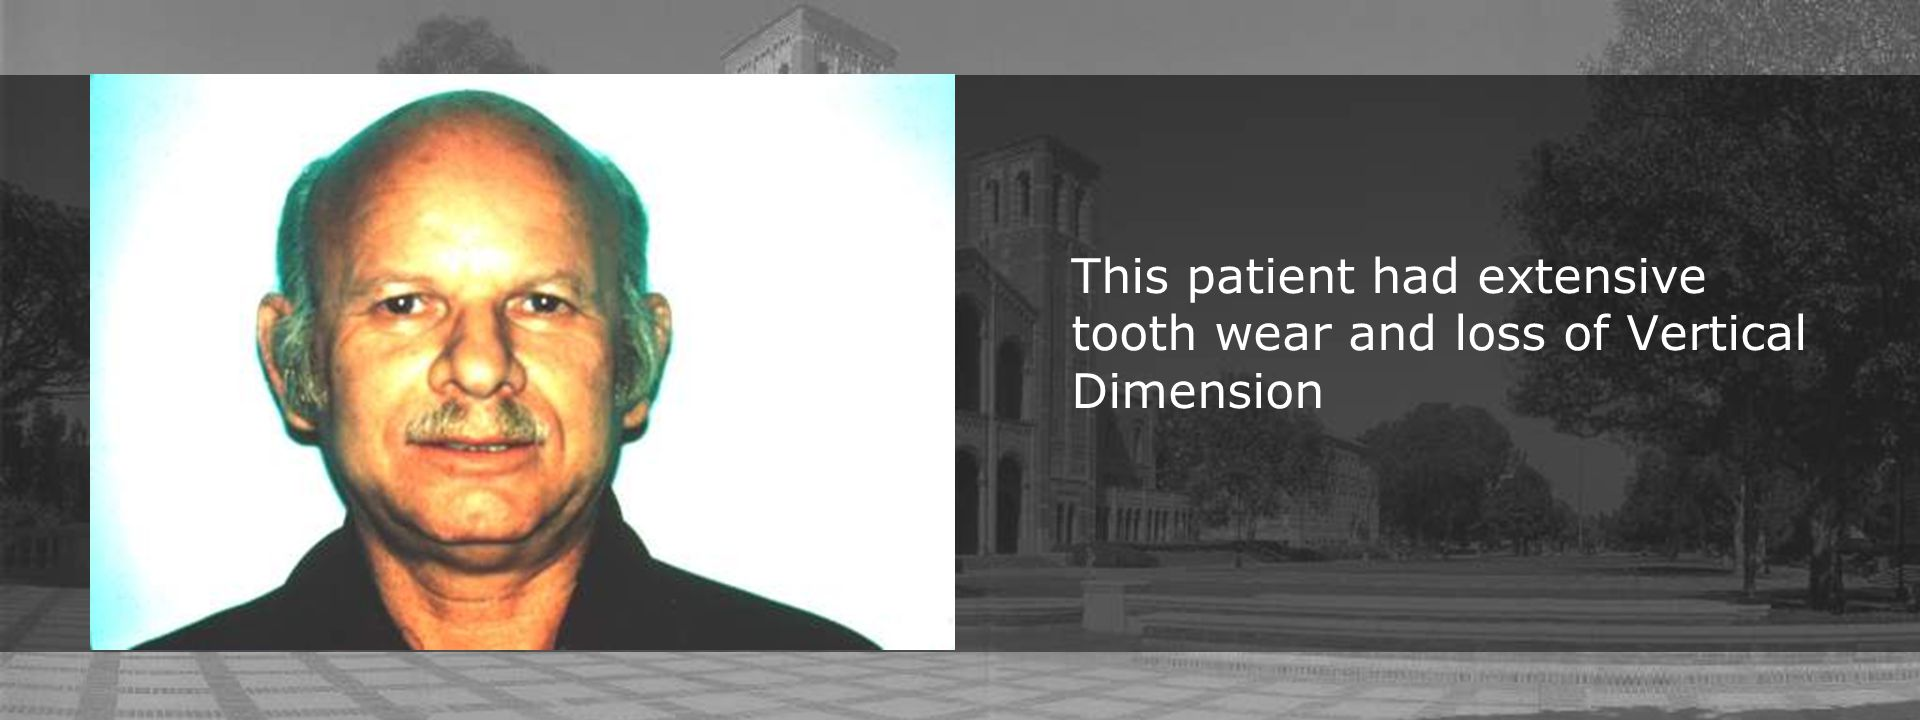 This patient had extensive tooth wear and loss of Vertical Dimension